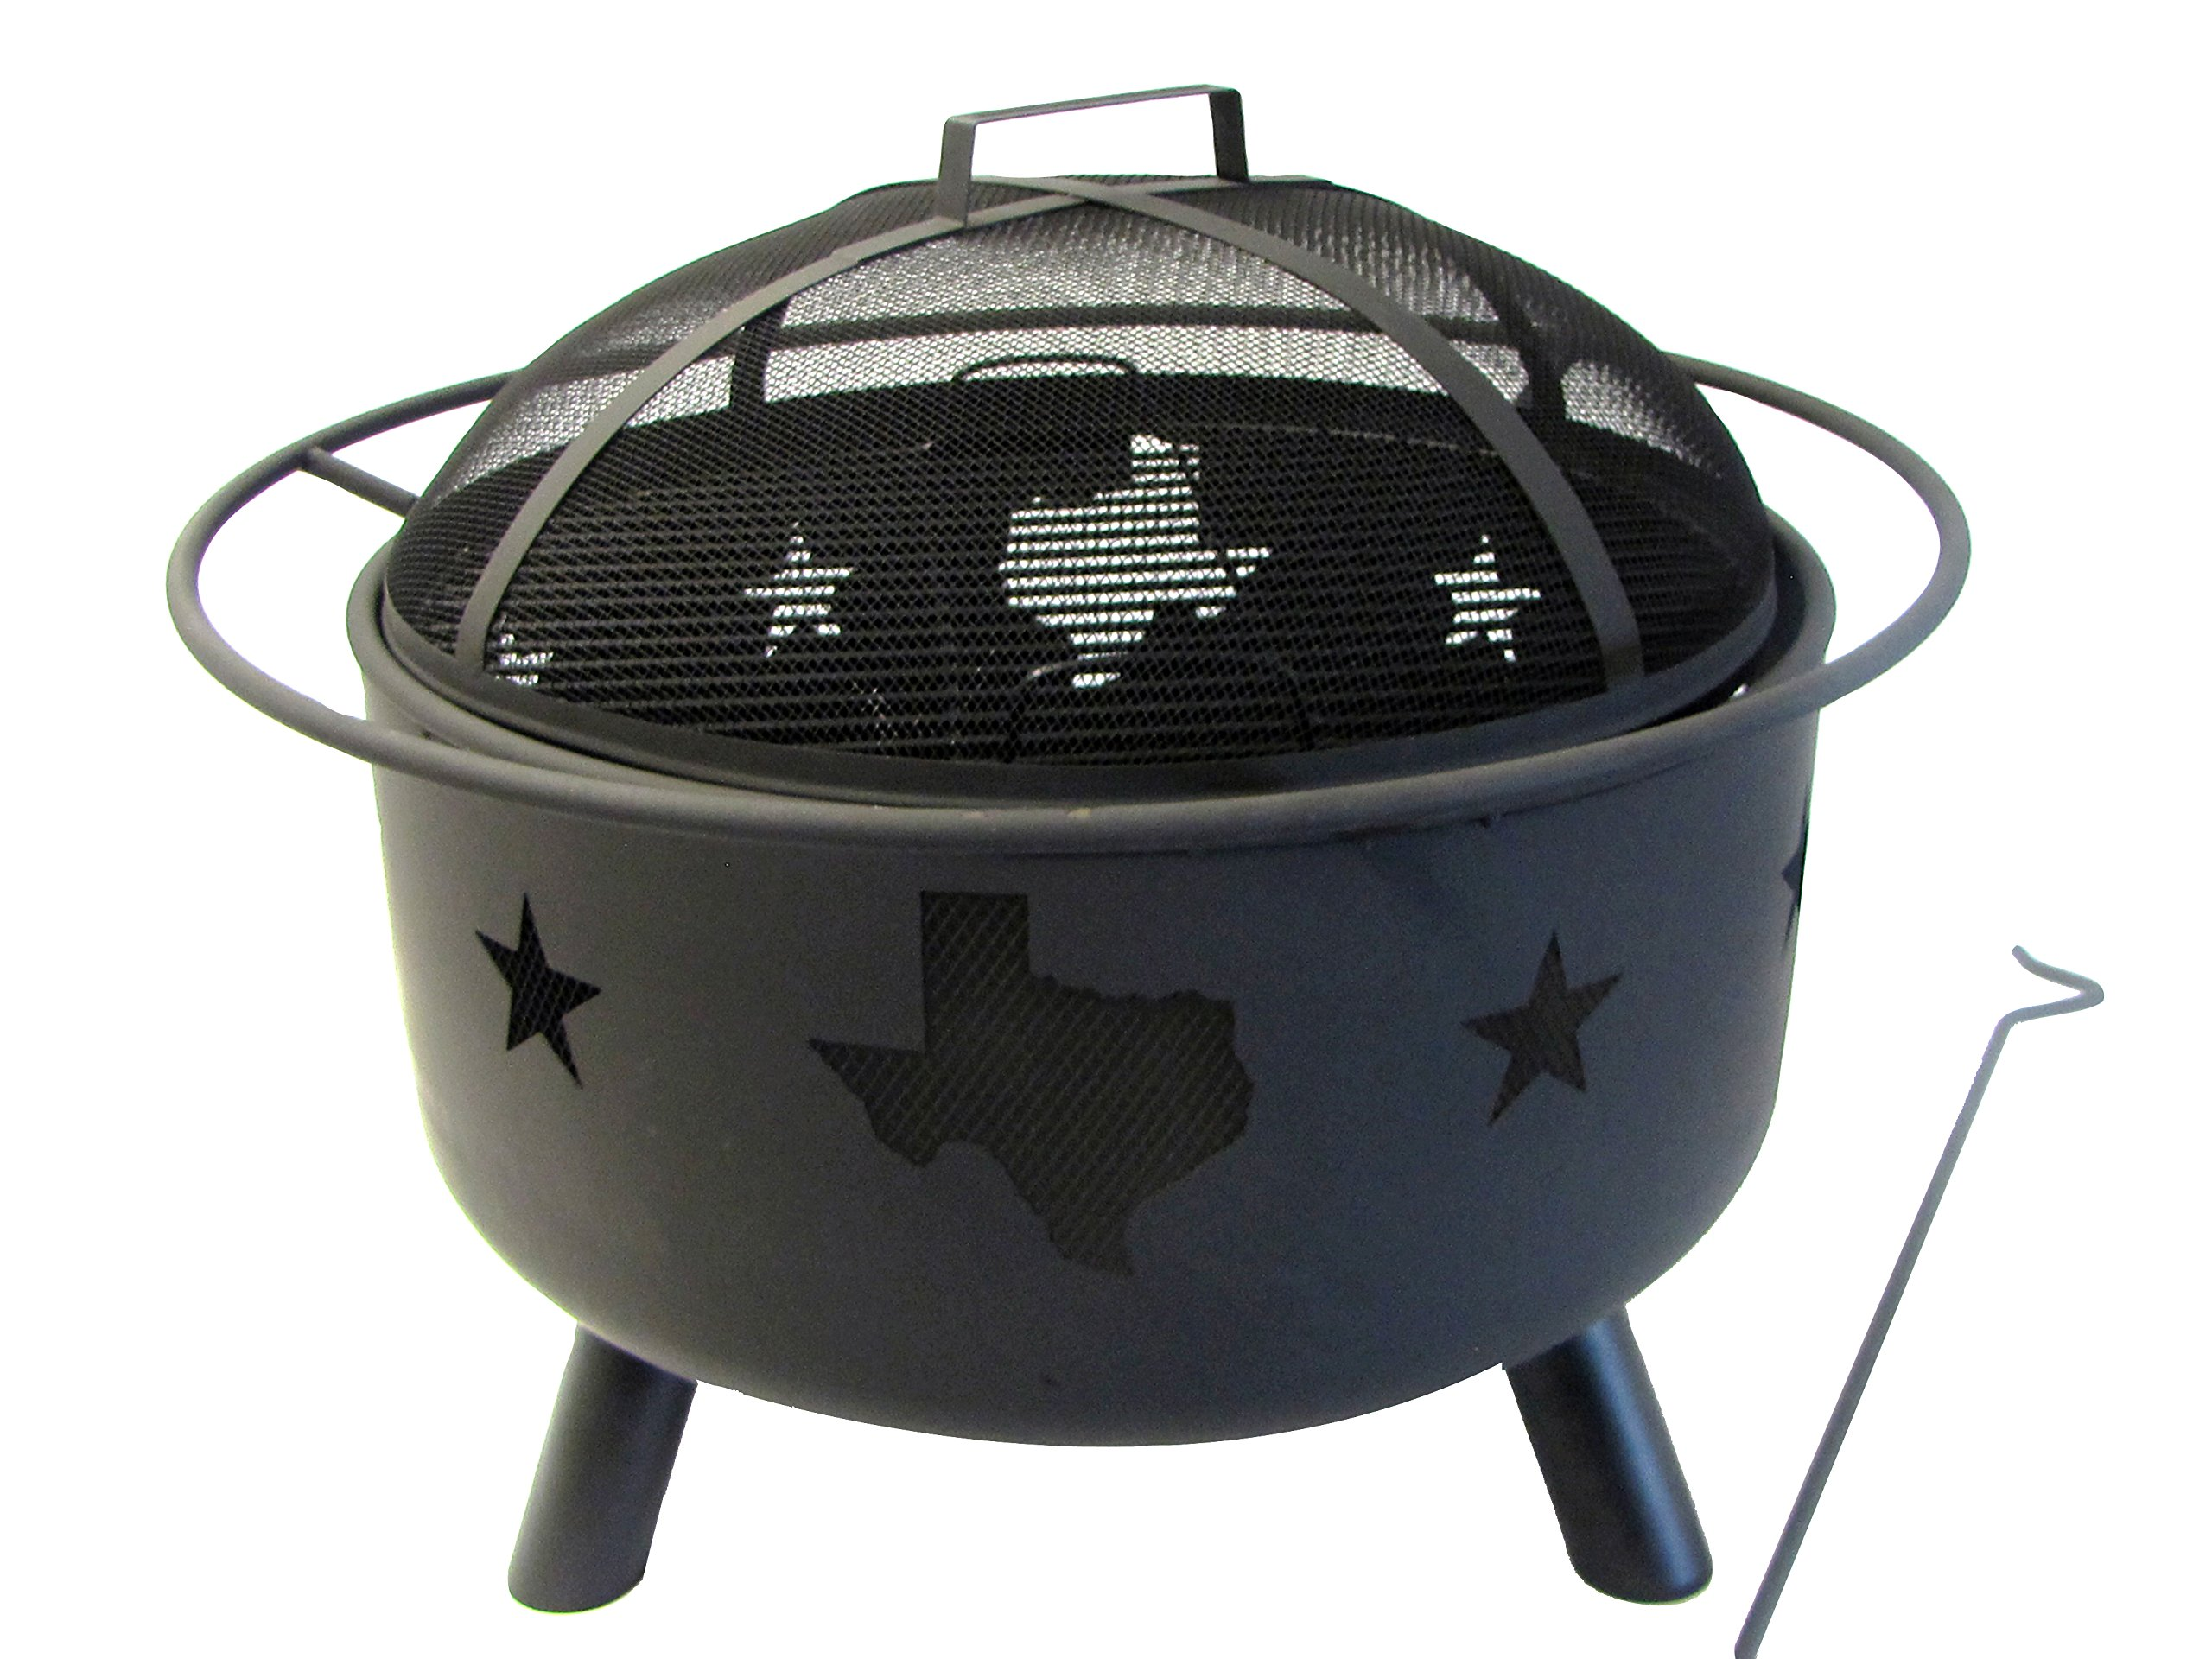 Leigh Country TX 93538 Texas Map Fire Pit - Texas and star design cutouts Sturdy Steel construction with Black finish Safety ring for easy transport - patio, outdoor-decor, fire-pits-outdoor-fireplaces - 81aCtPeCfIL -